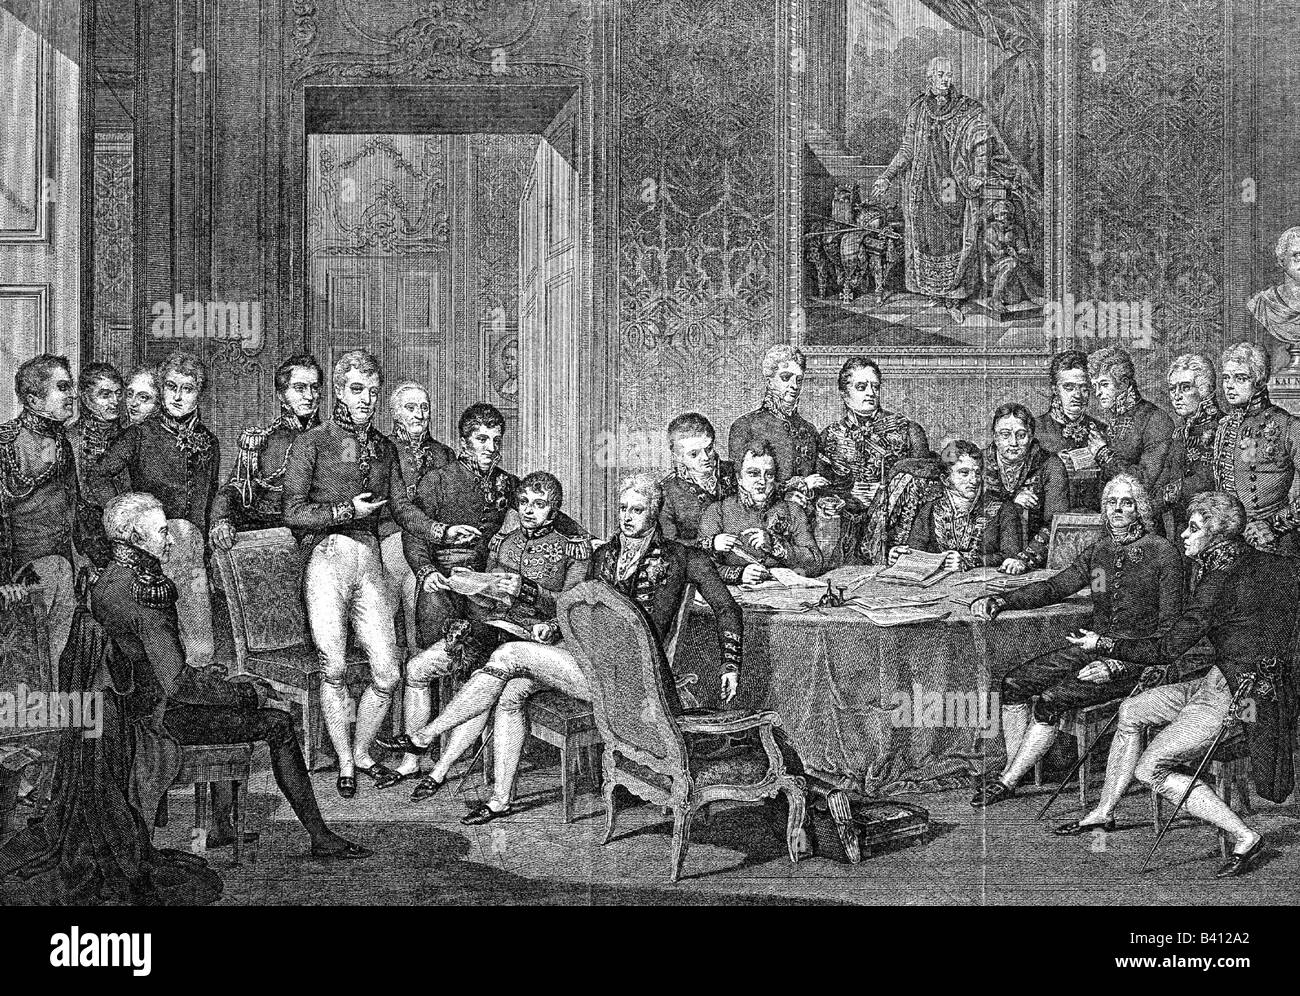 politics, conference, Congress of Vienna, 18.9.1814 - 9.6.1815, assembly of the delegates, 1814, copper engraving - Stock Image